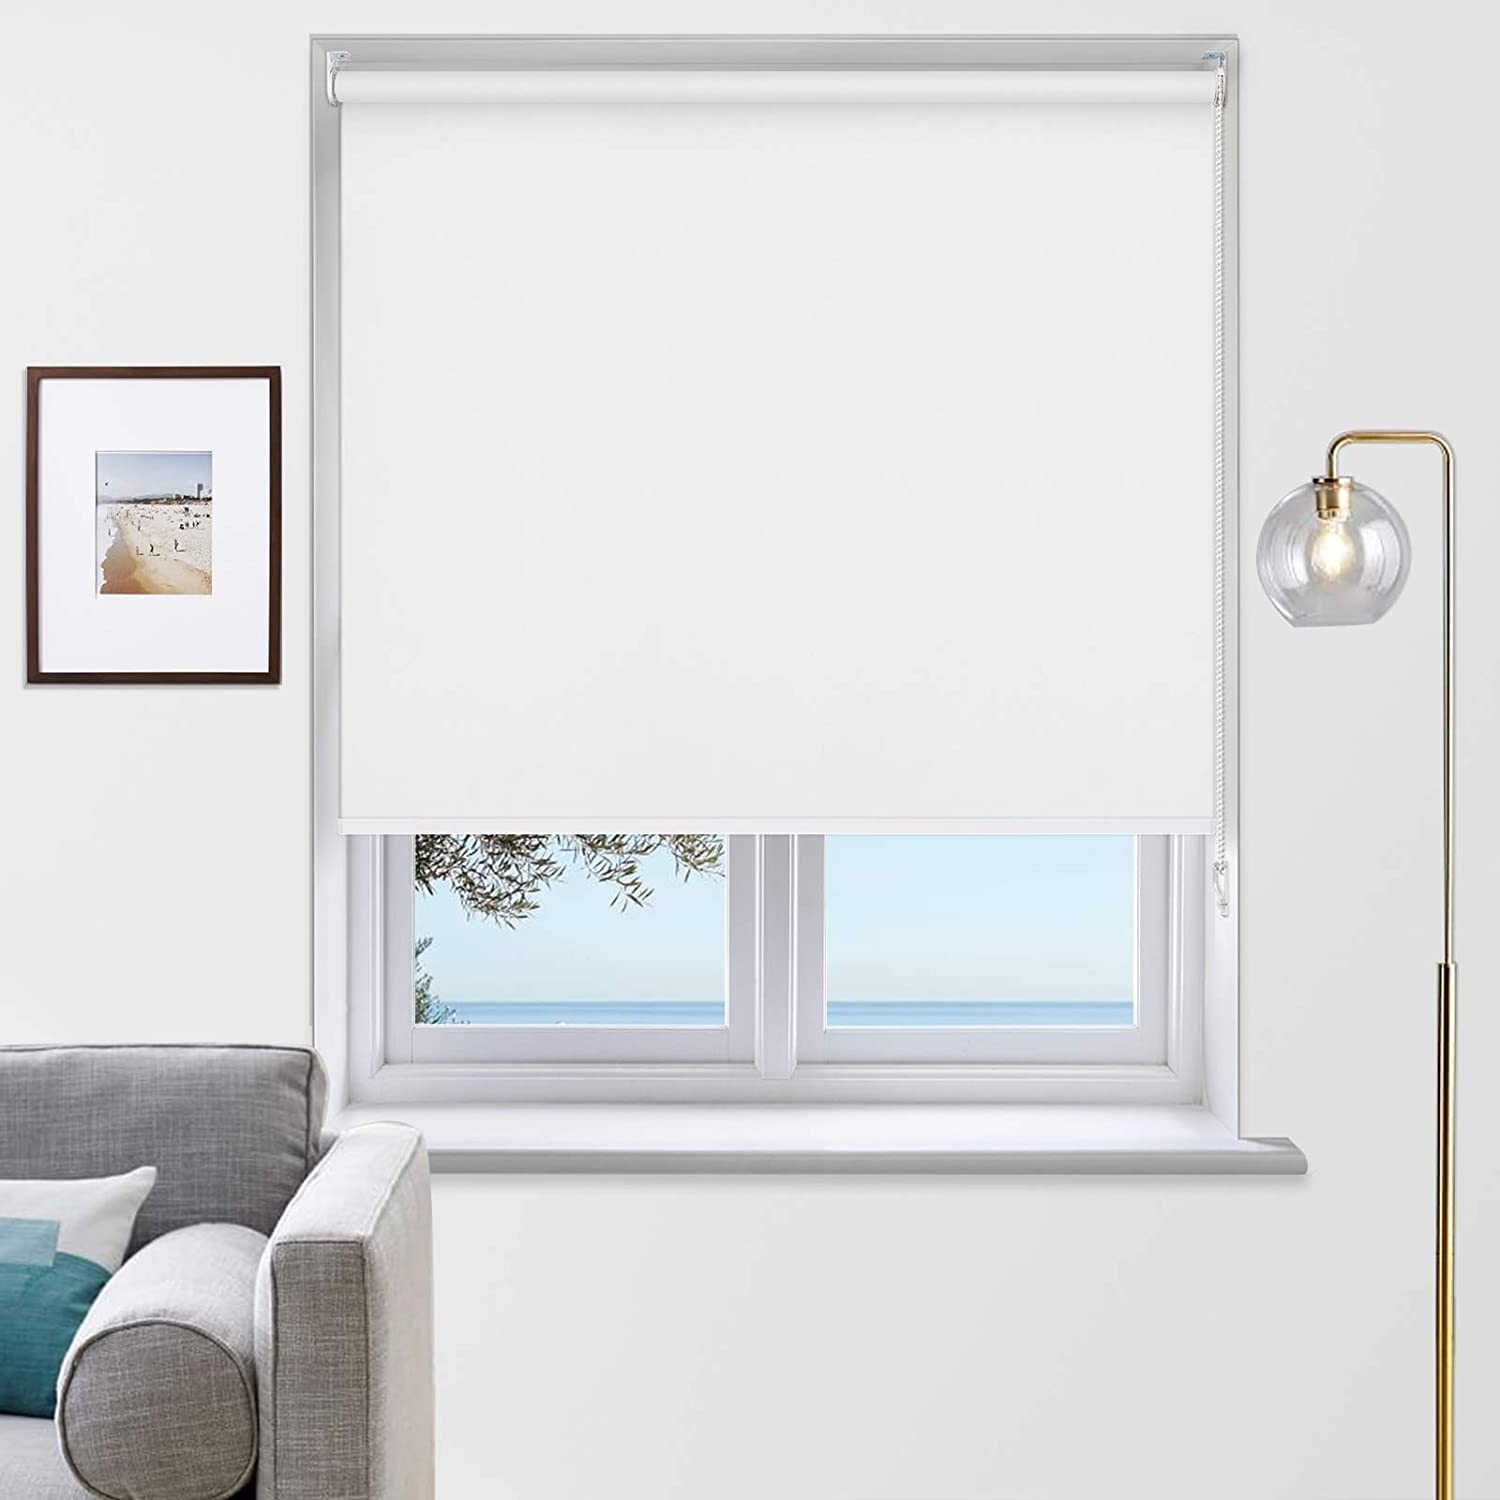 Max 70% OFF MiLin Blackout shop Roller Shades Room Sh Darkening Window and Blinds